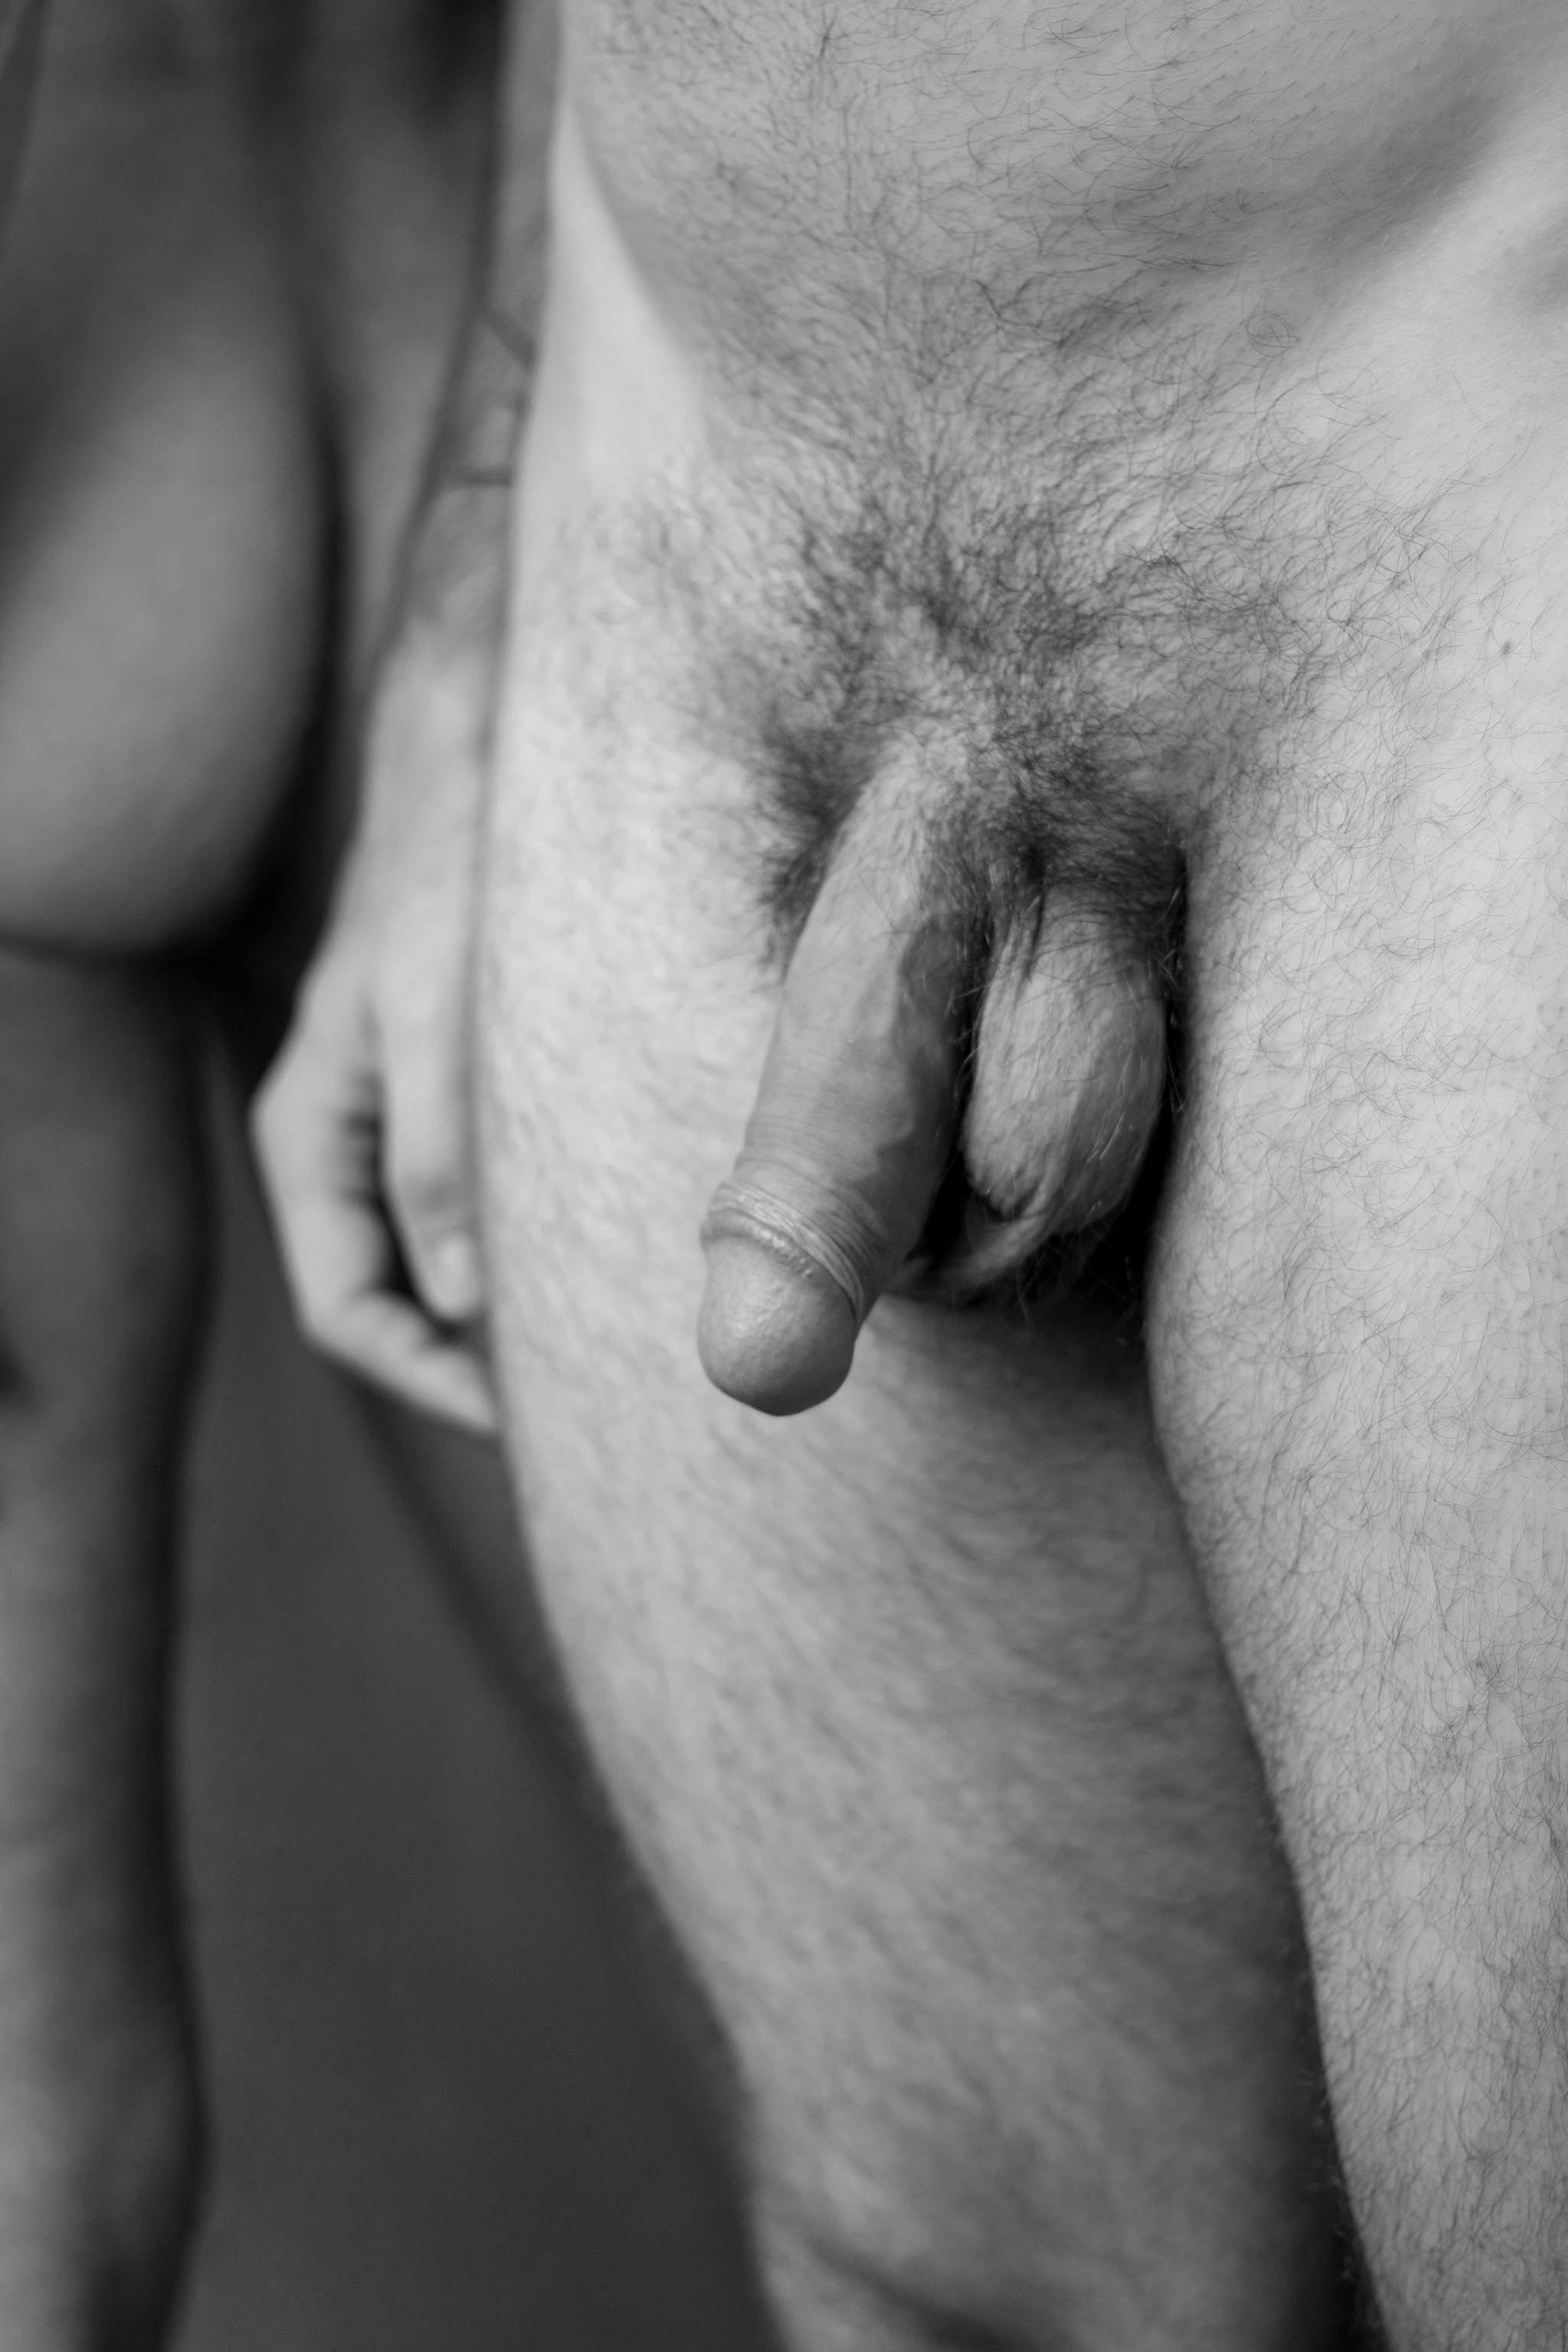 SofE EmbracE (II), by Kyle Sven ft Stefan Hutchison and Jonah Slakes (NSFW)